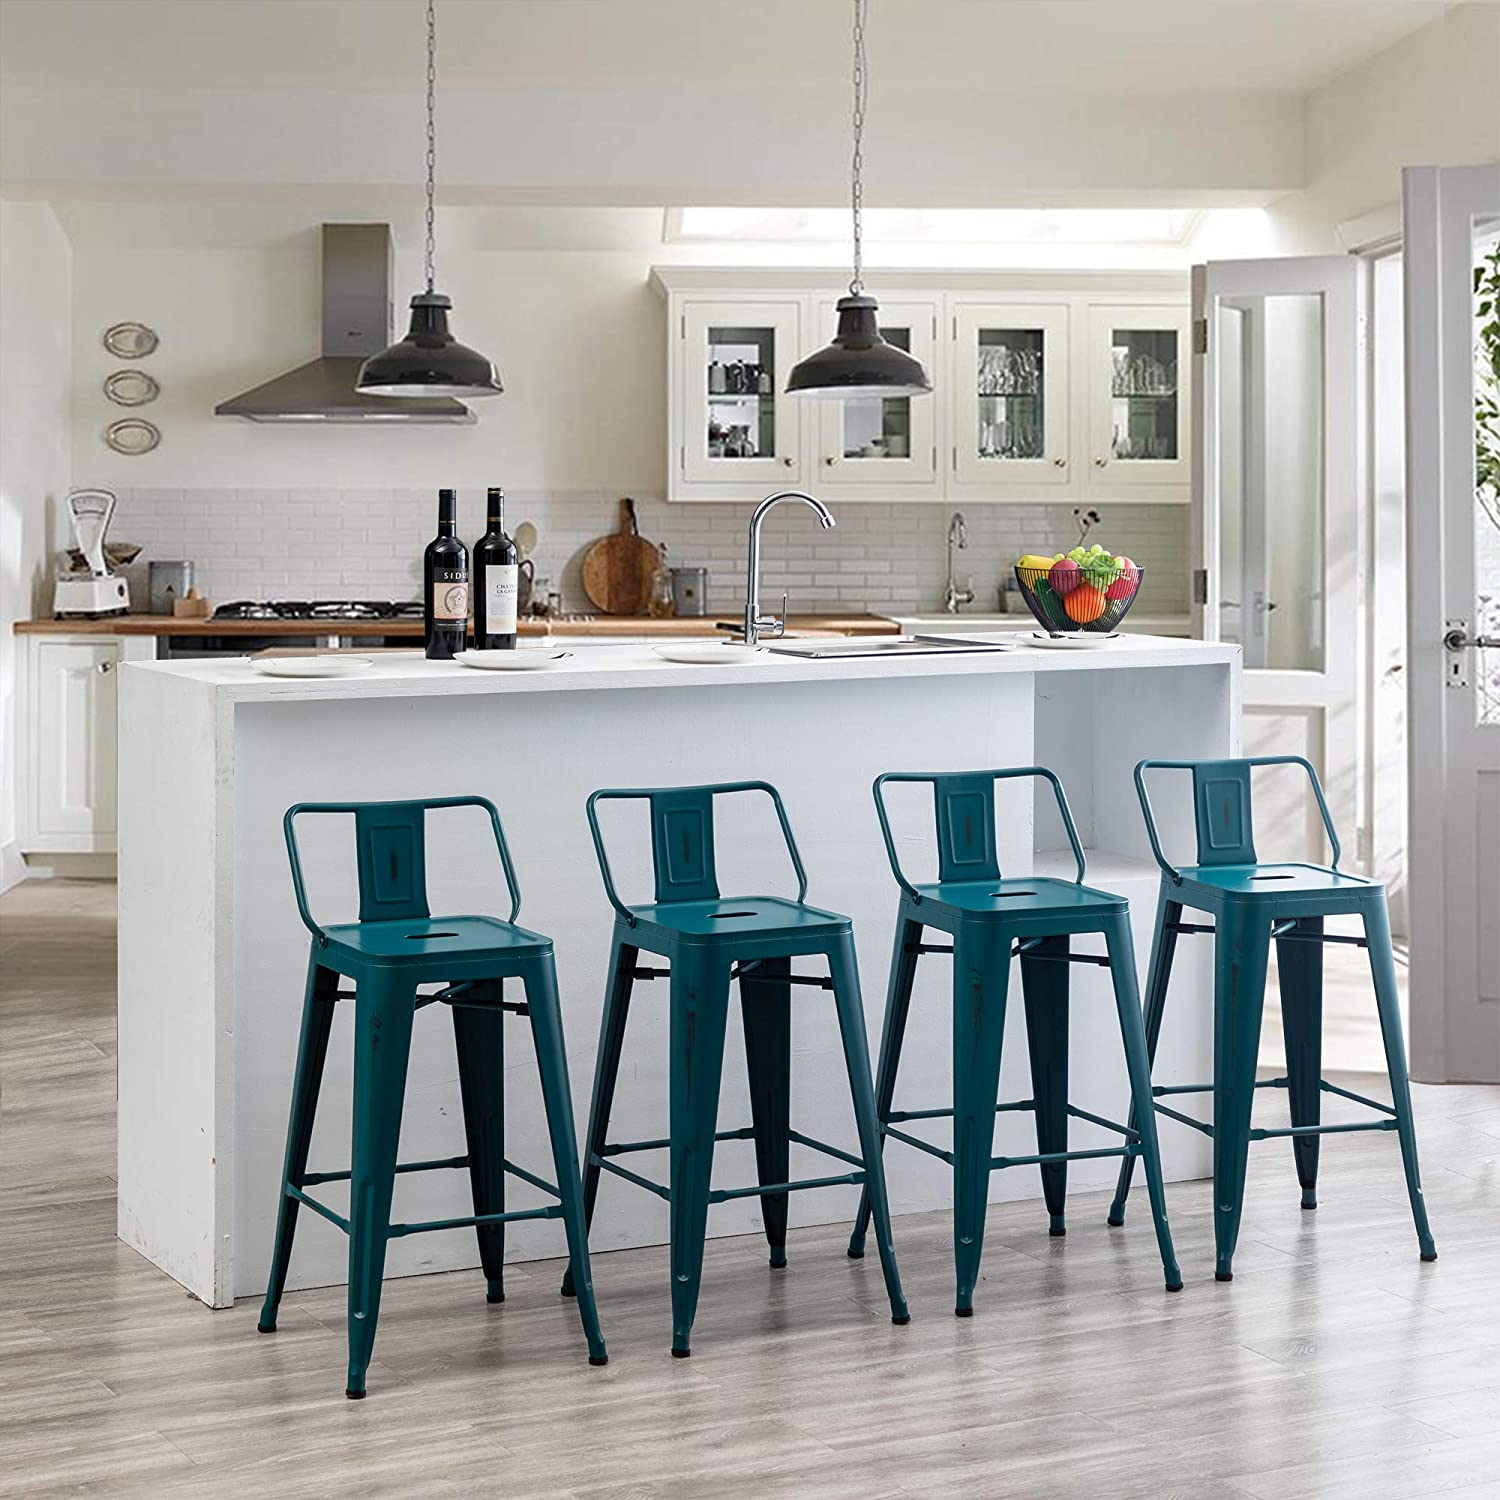 Distressed Bar Stools Set of 9 Industrial Counter Stools Metal Barstools  for Indoor Outdoor 9 Inch, Distressed Teal